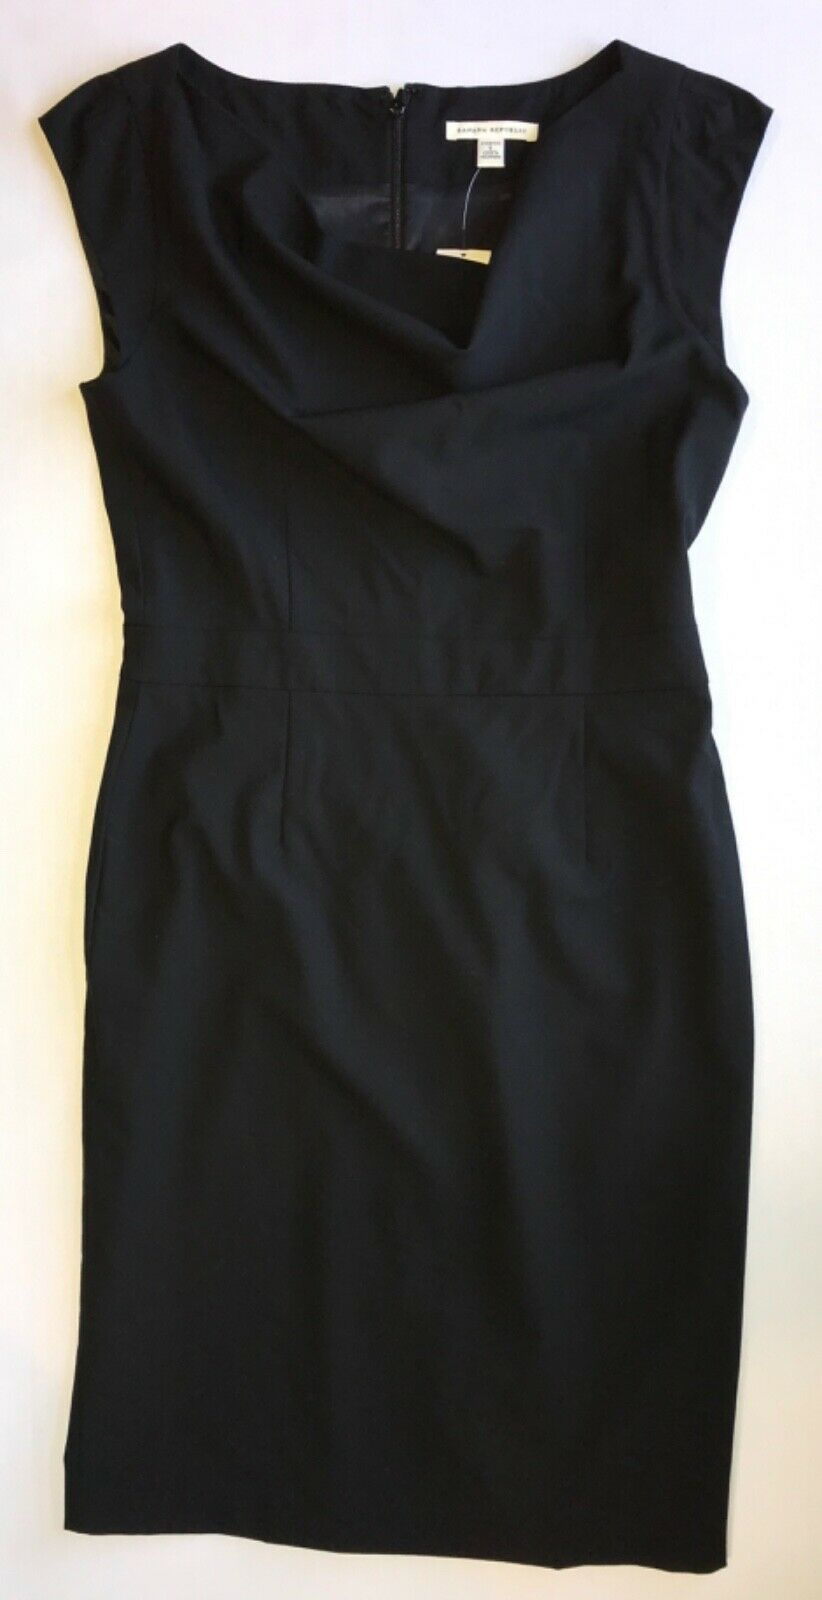 Primary image for Black Cowl Neck Front Cap Sleeve Shift Dress in size 6 by Banana Republic